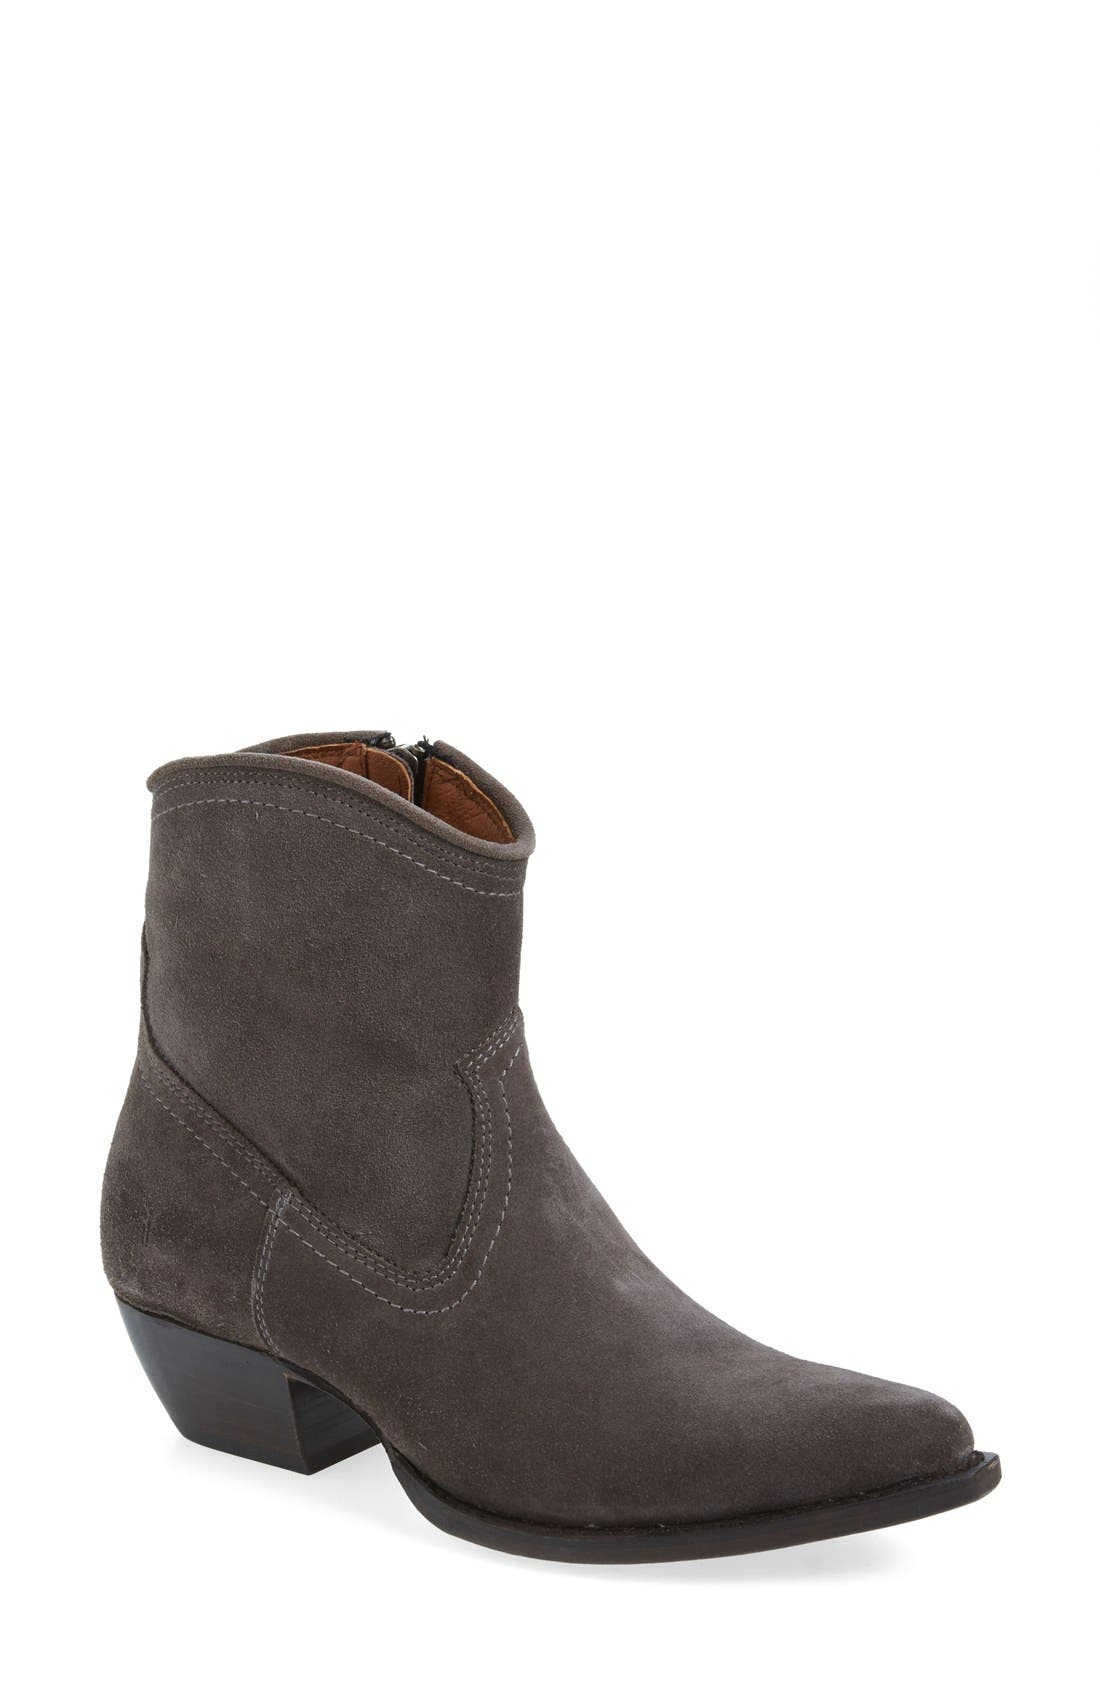 Alternate Image 1 Selected - Frye 'Sacha' Short Boot (Women)